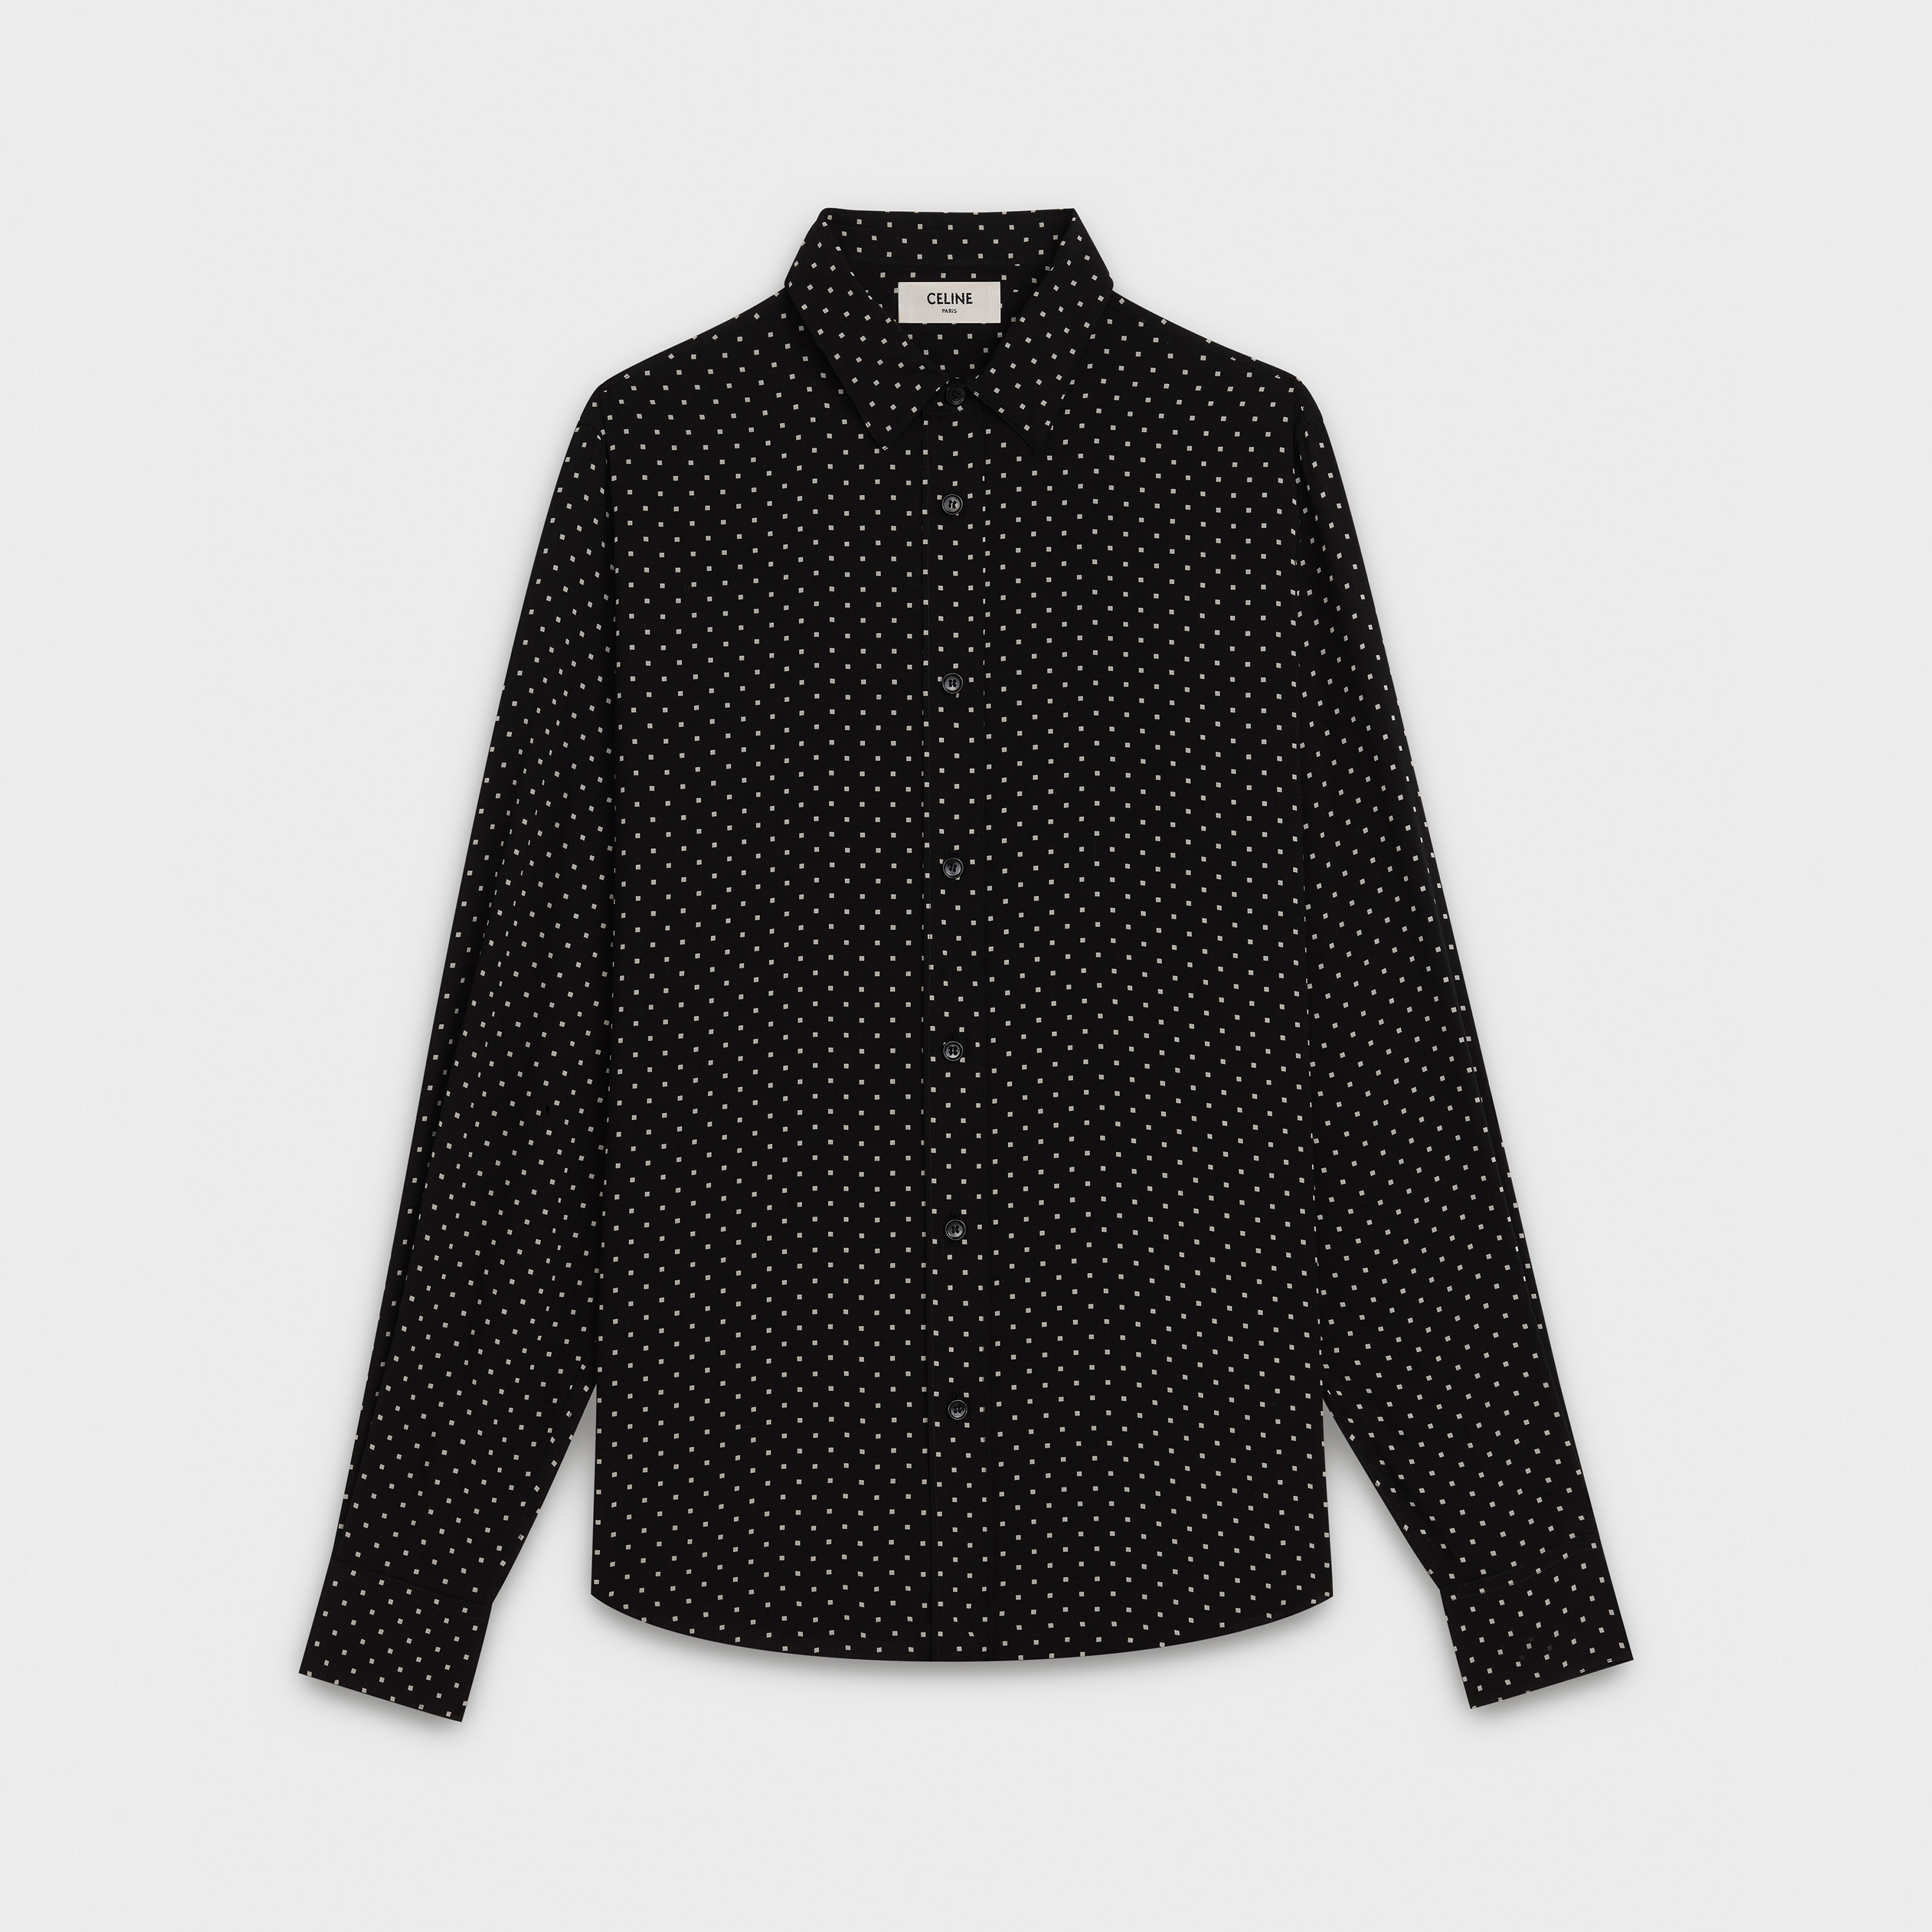 classic shirt in microcheckered printed viscose with modern collar | CELINE